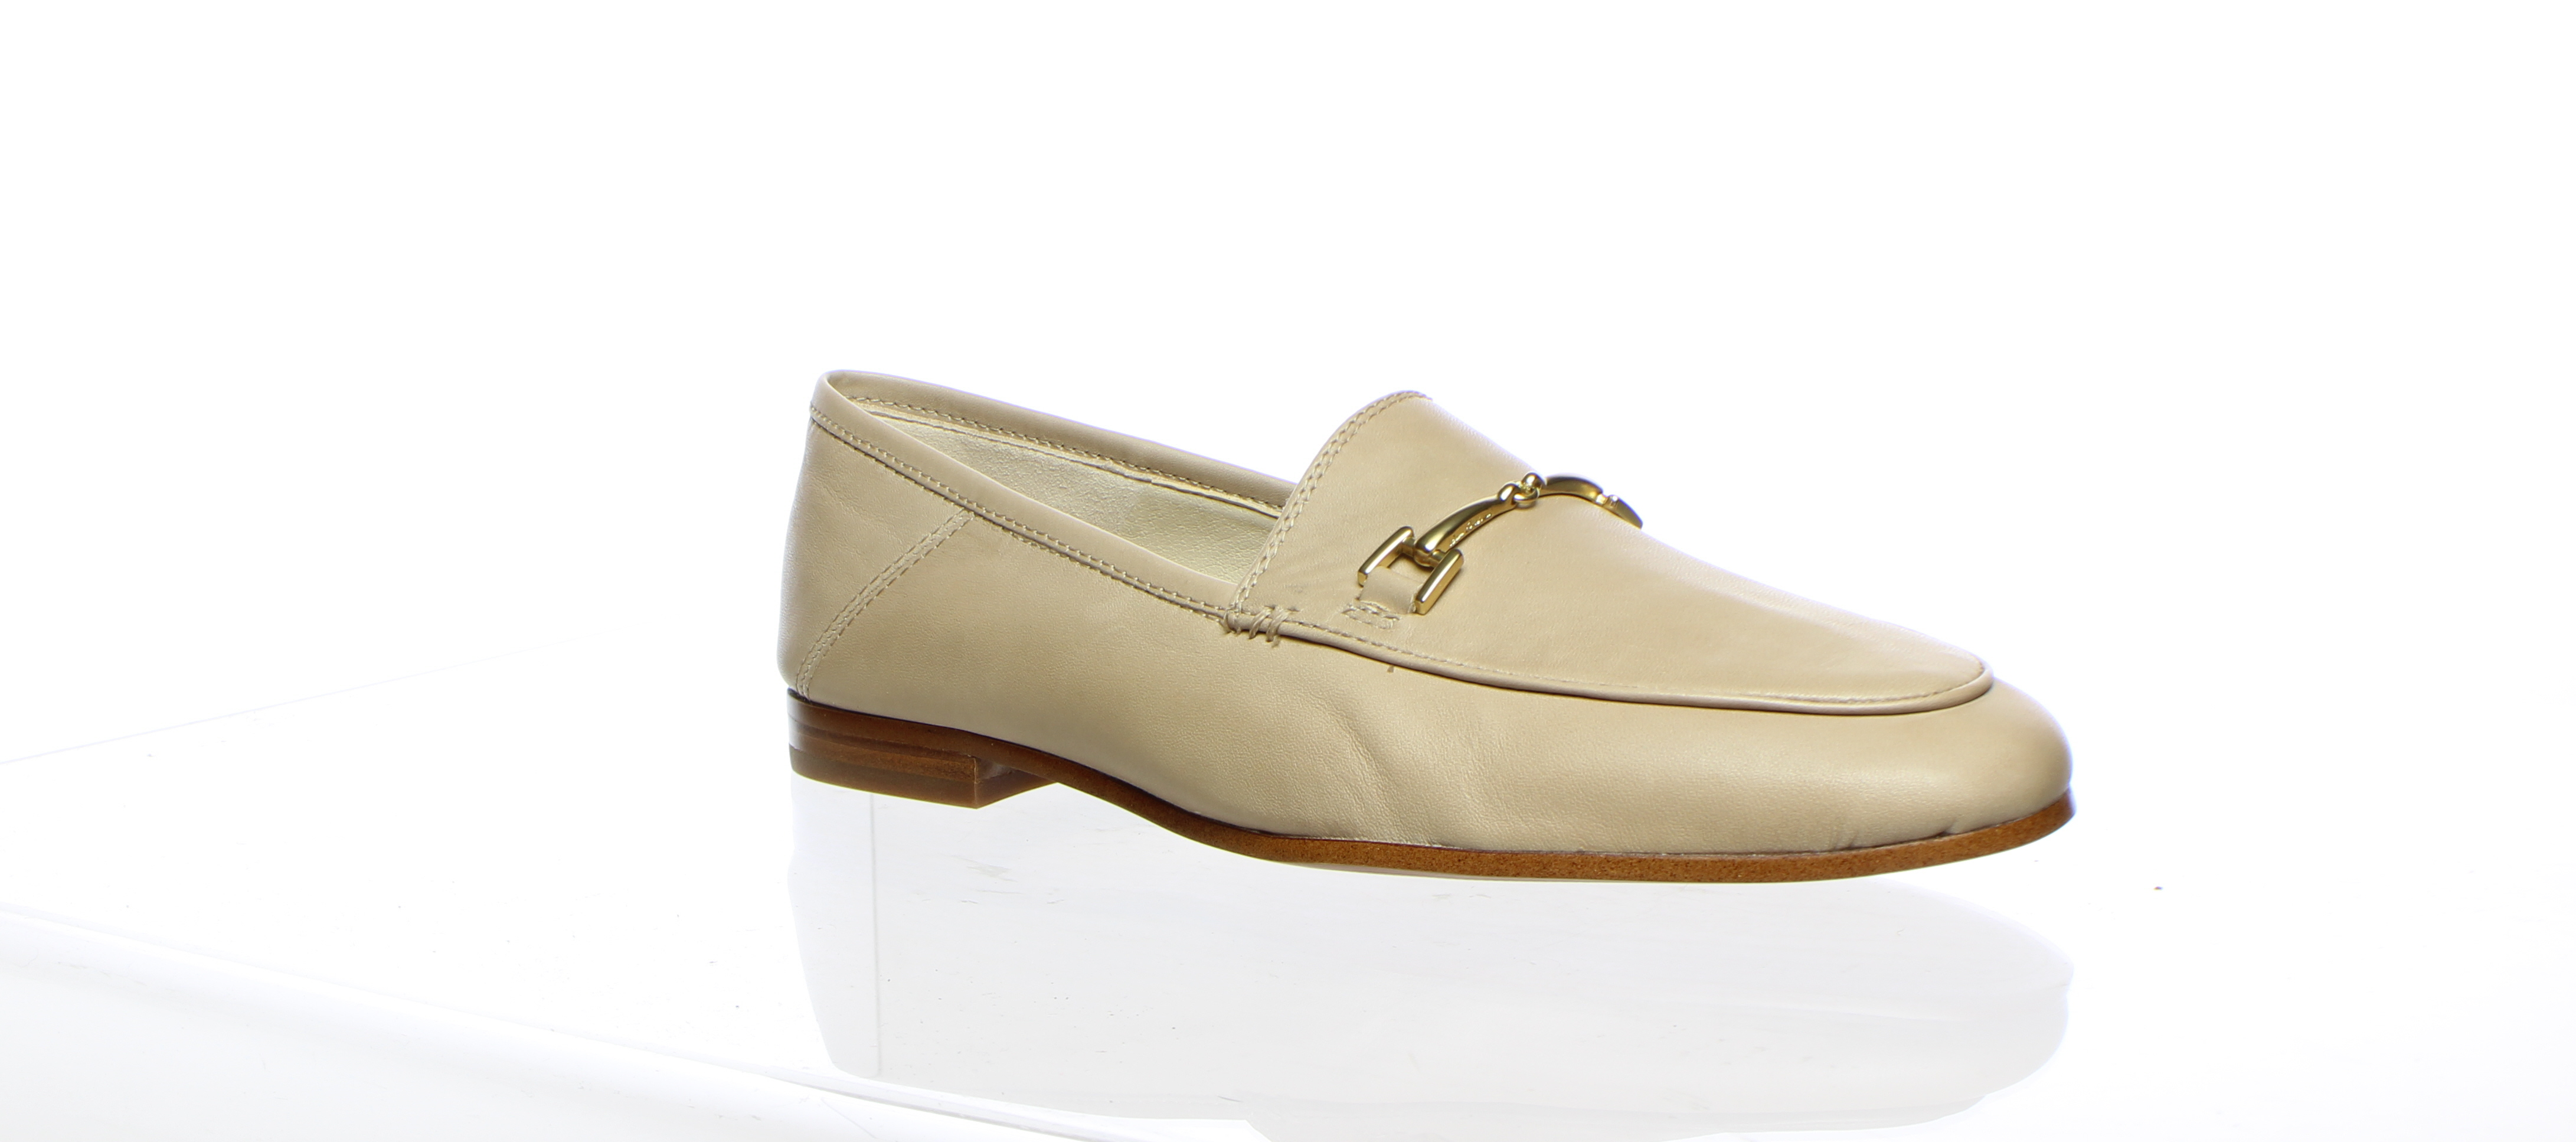 35b9a9b4dc4 Details about Sam Edelman Womens Loraine Tan Loafers Size 6 (214054). More  Amazing Brand Name Deals!!